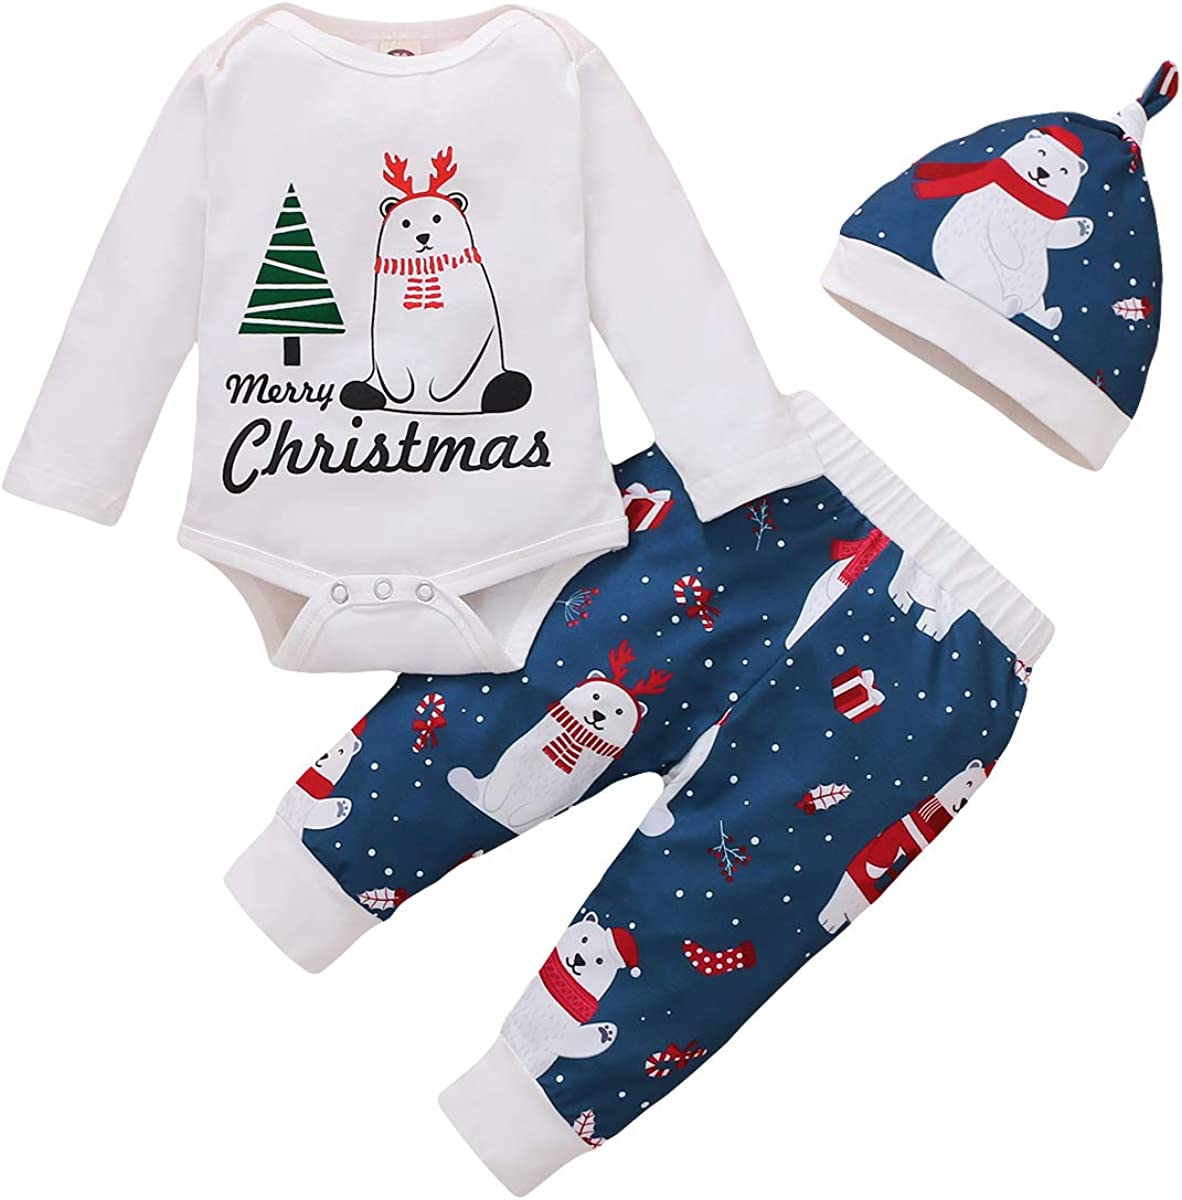 3Pcs Newborn Baby Girl Boy My First Christmas Outfits Christmas Tree Romper Festival Clothes Set